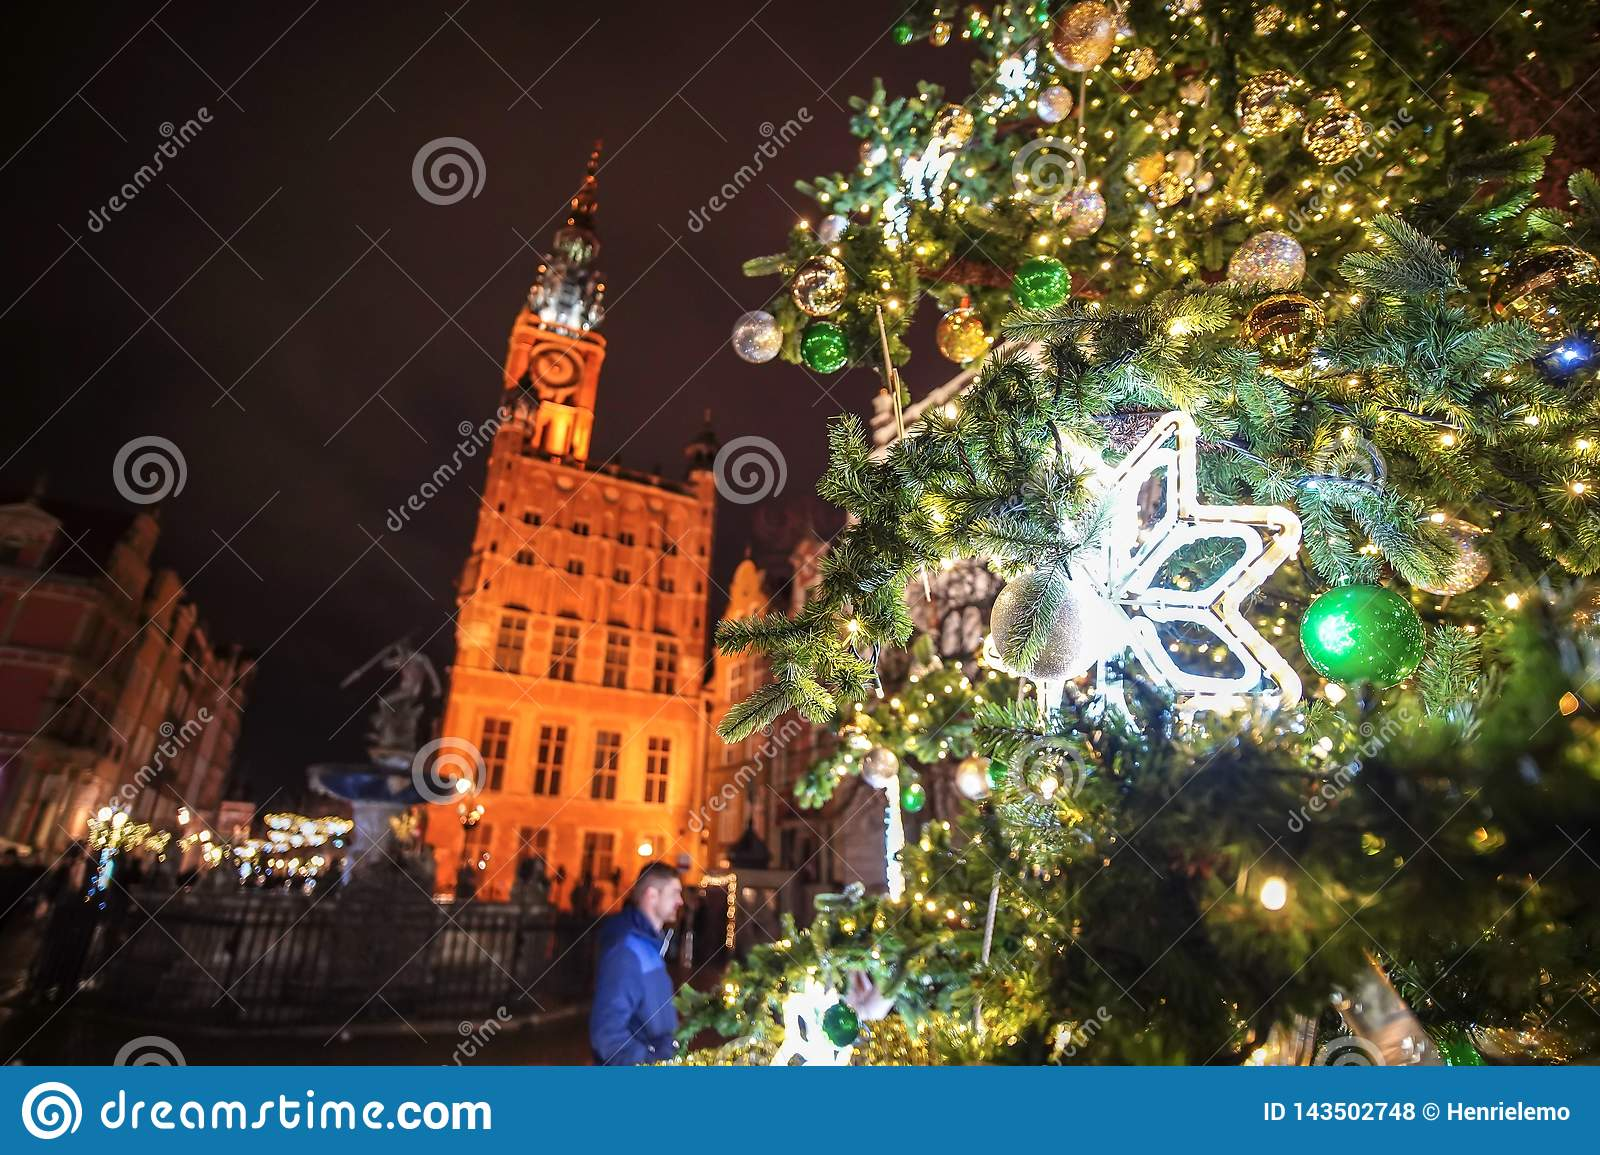 Gdansk, Poland - December 13, 2018: Christmas decorations in the old town of Gdansk , Poland